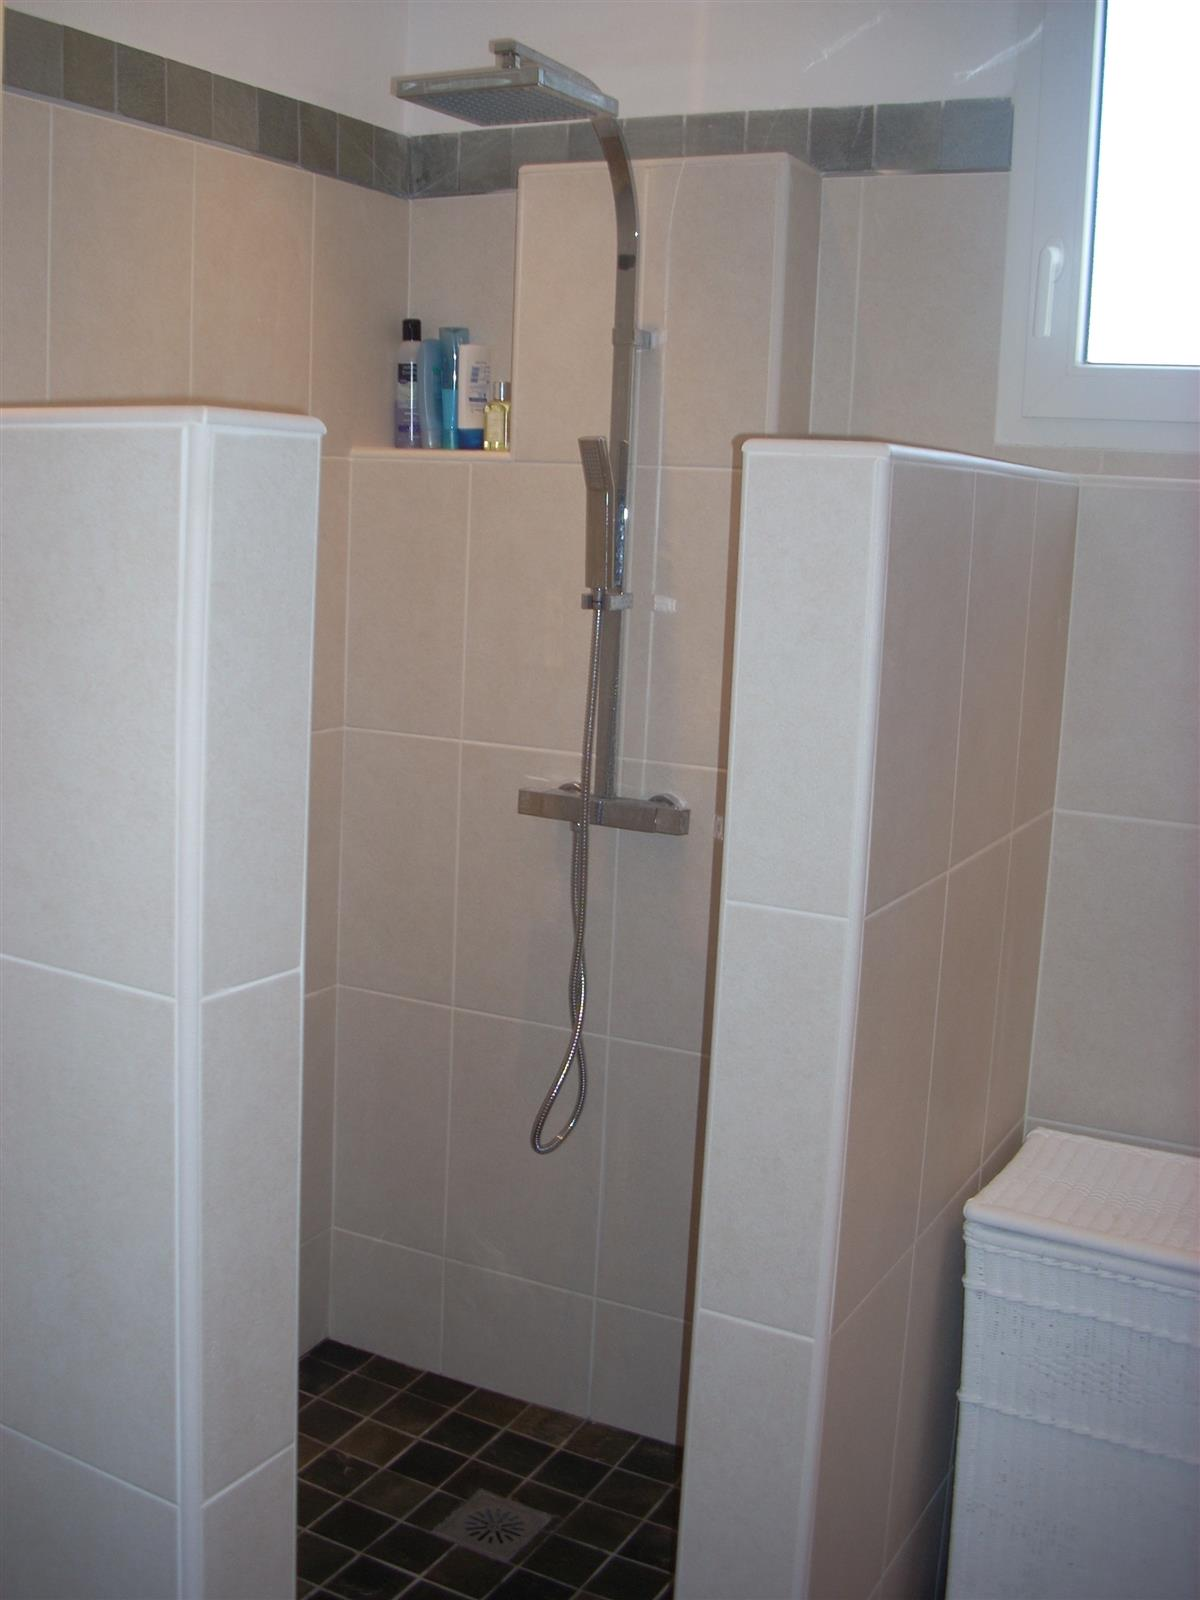 Large walk in shower, family bathroom, Thermostatic heated control